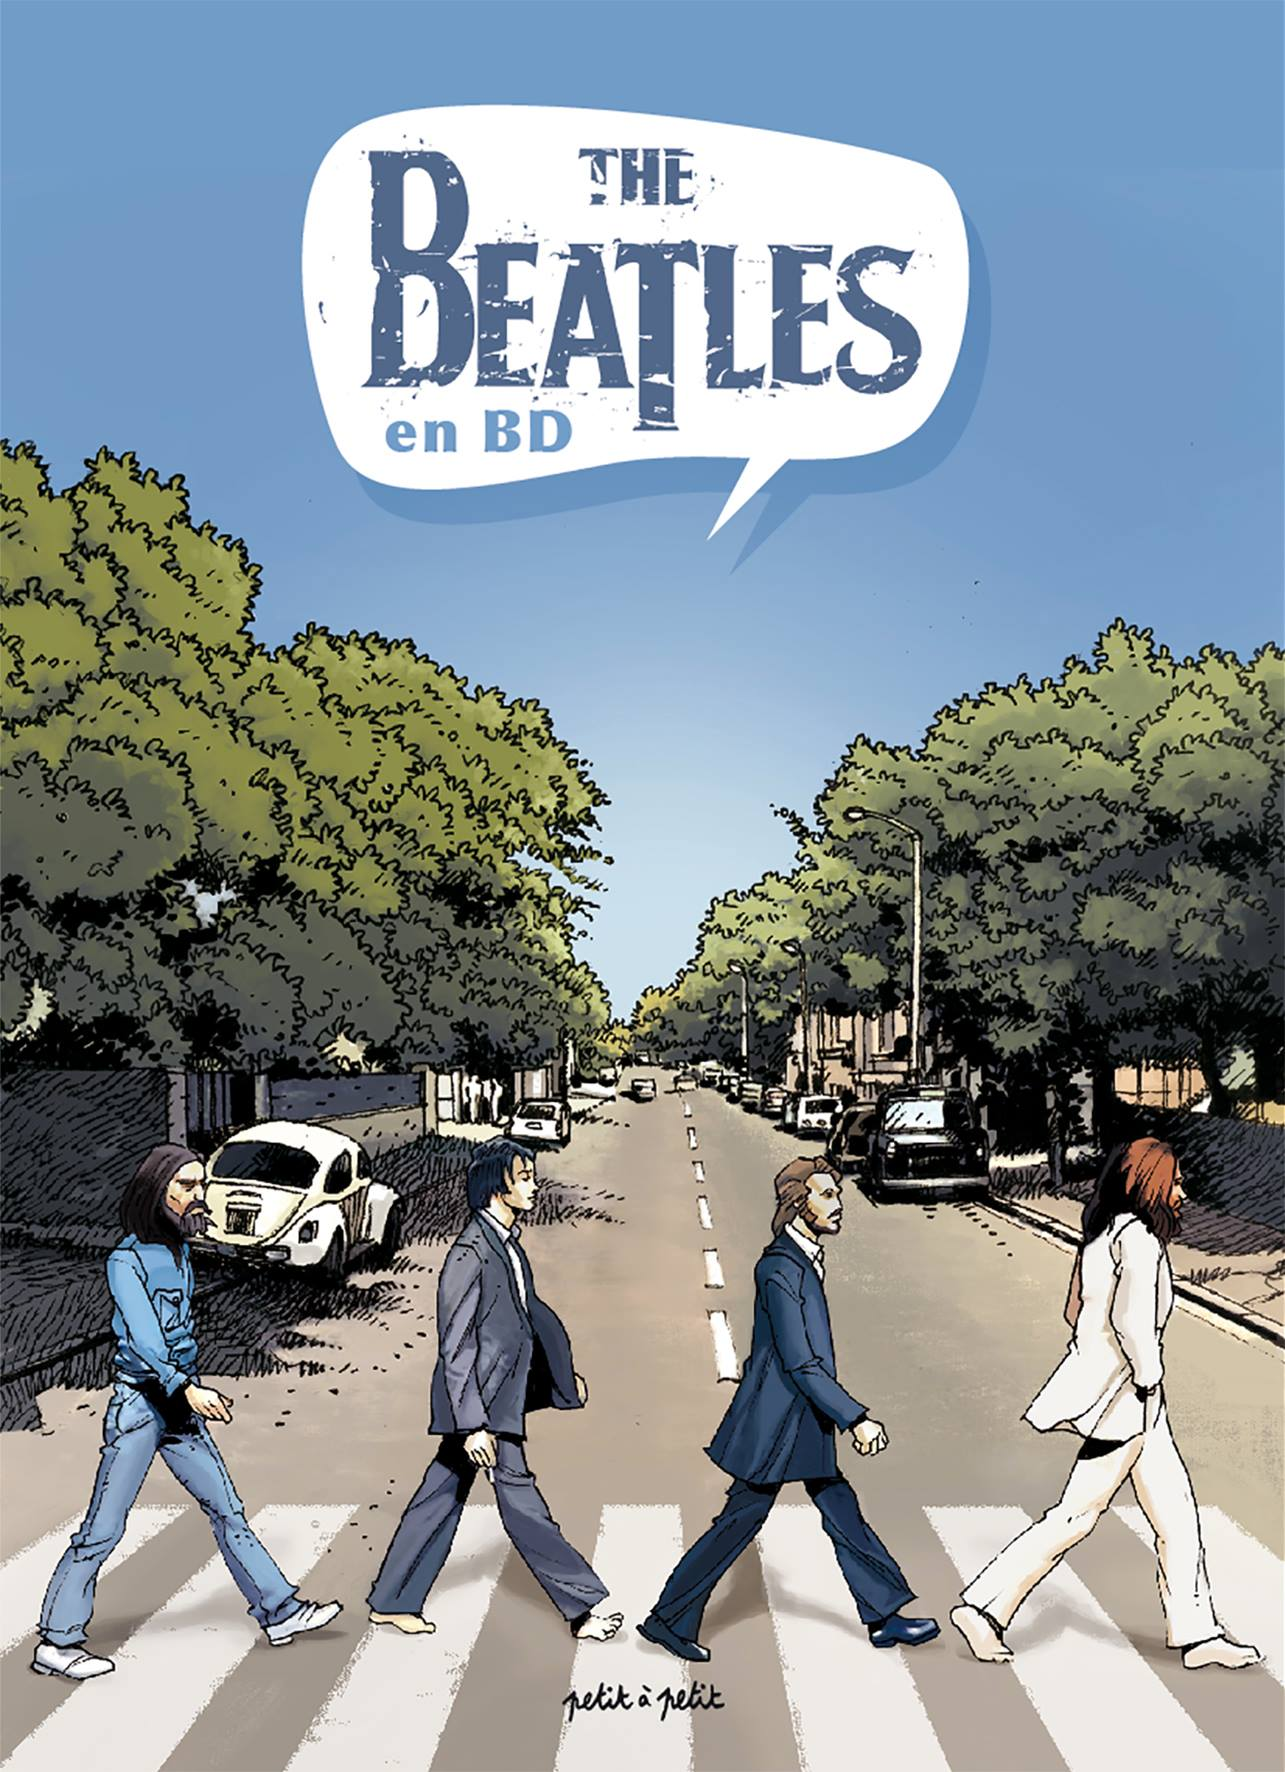 the-beatles-en-bd-petit-a-petit-michel-mabels-gaets-christophe-billard-couverture